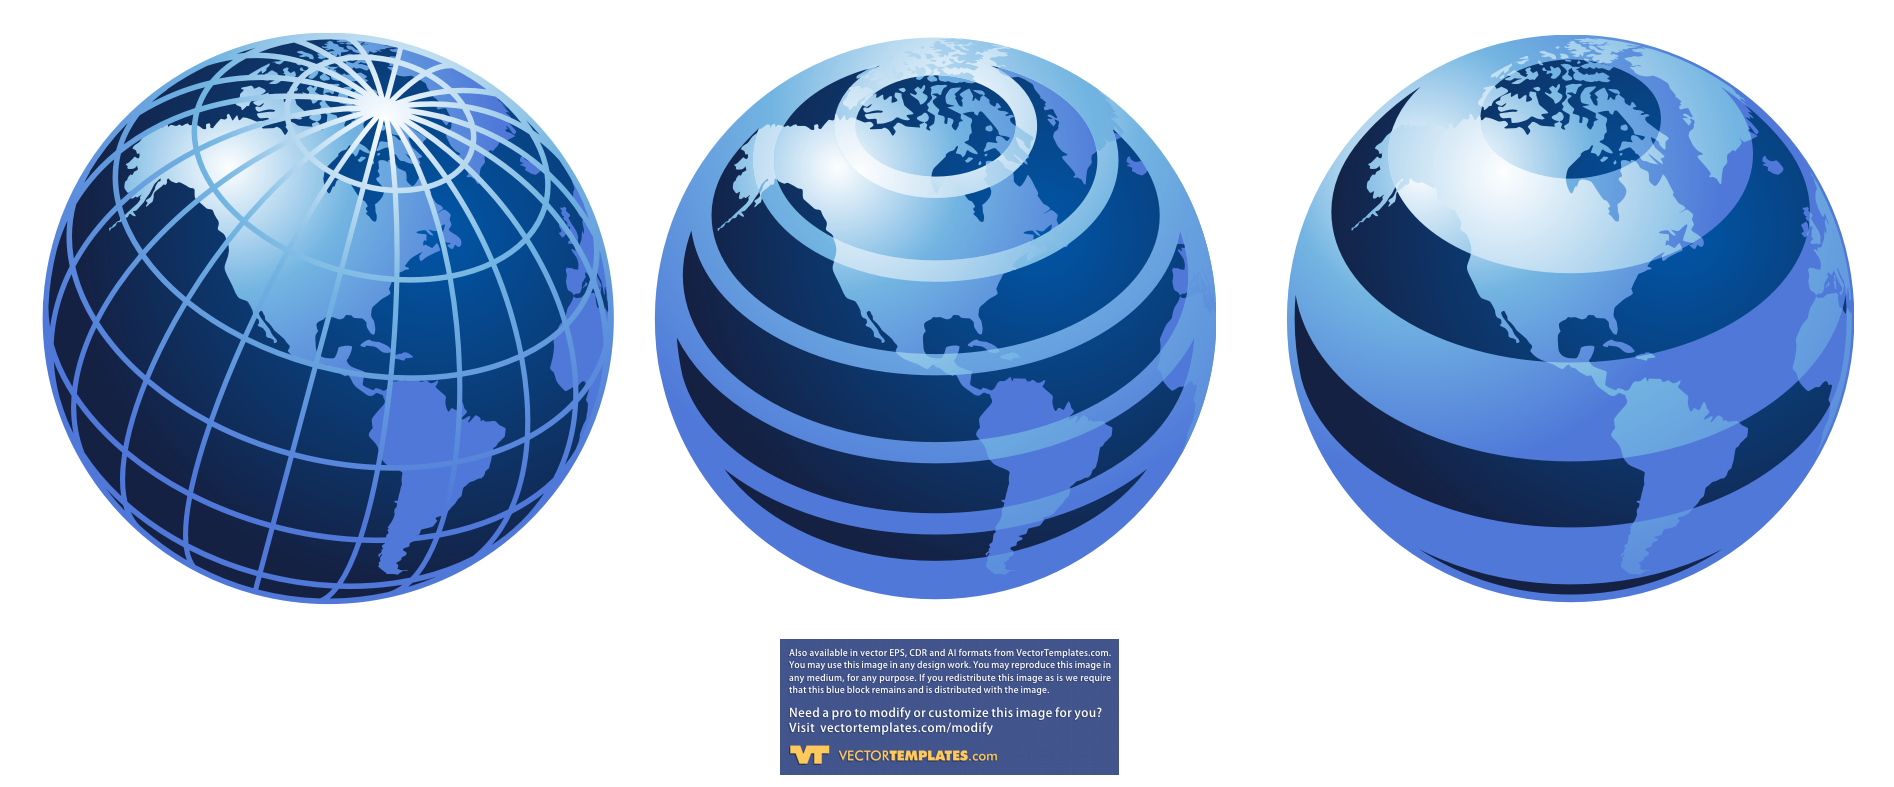 1894x787 Images Of Globes, Planets, Earth.